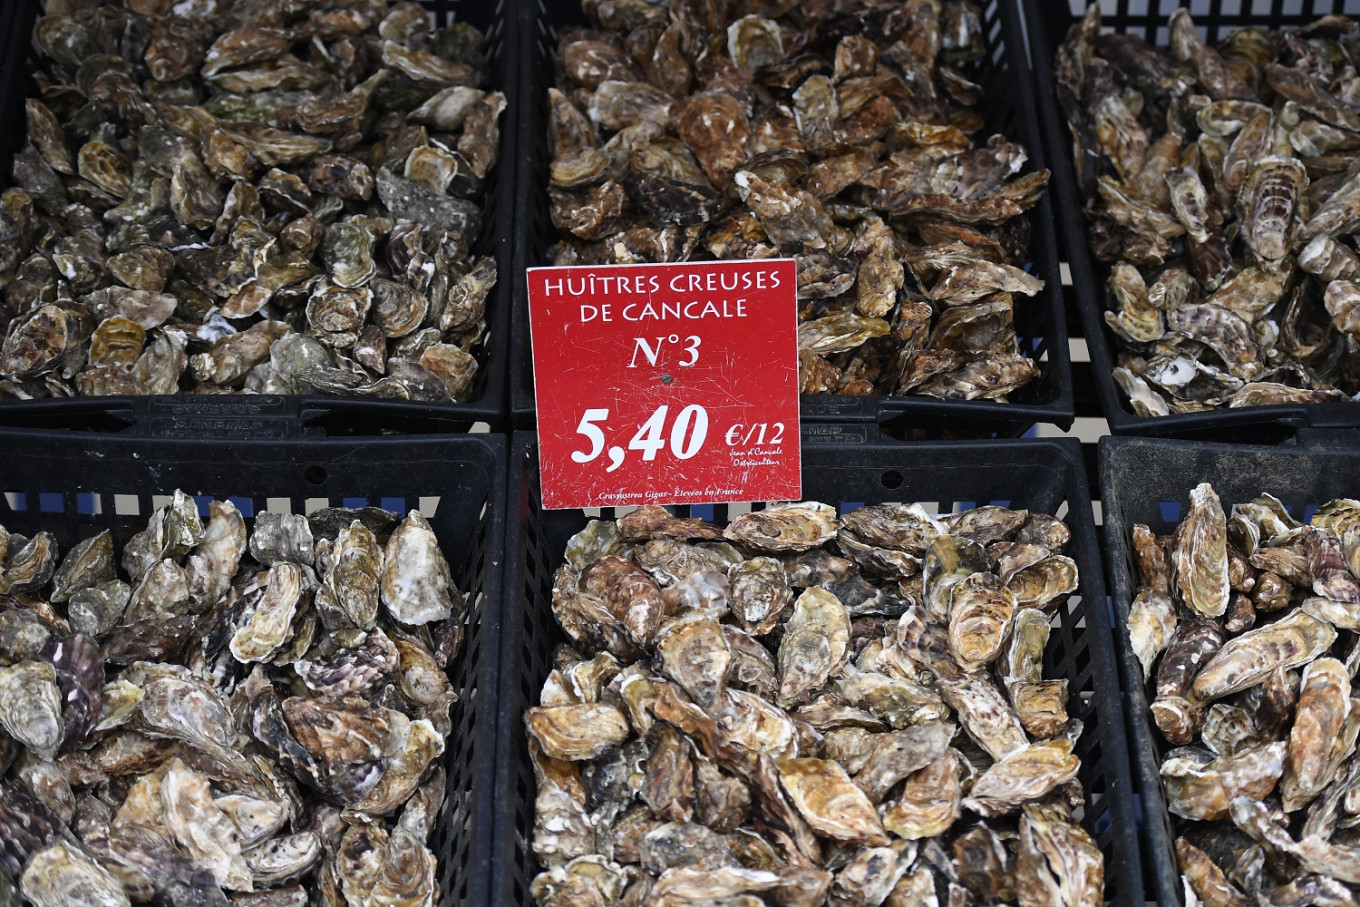 Climate change takes toll on French oyster farmers